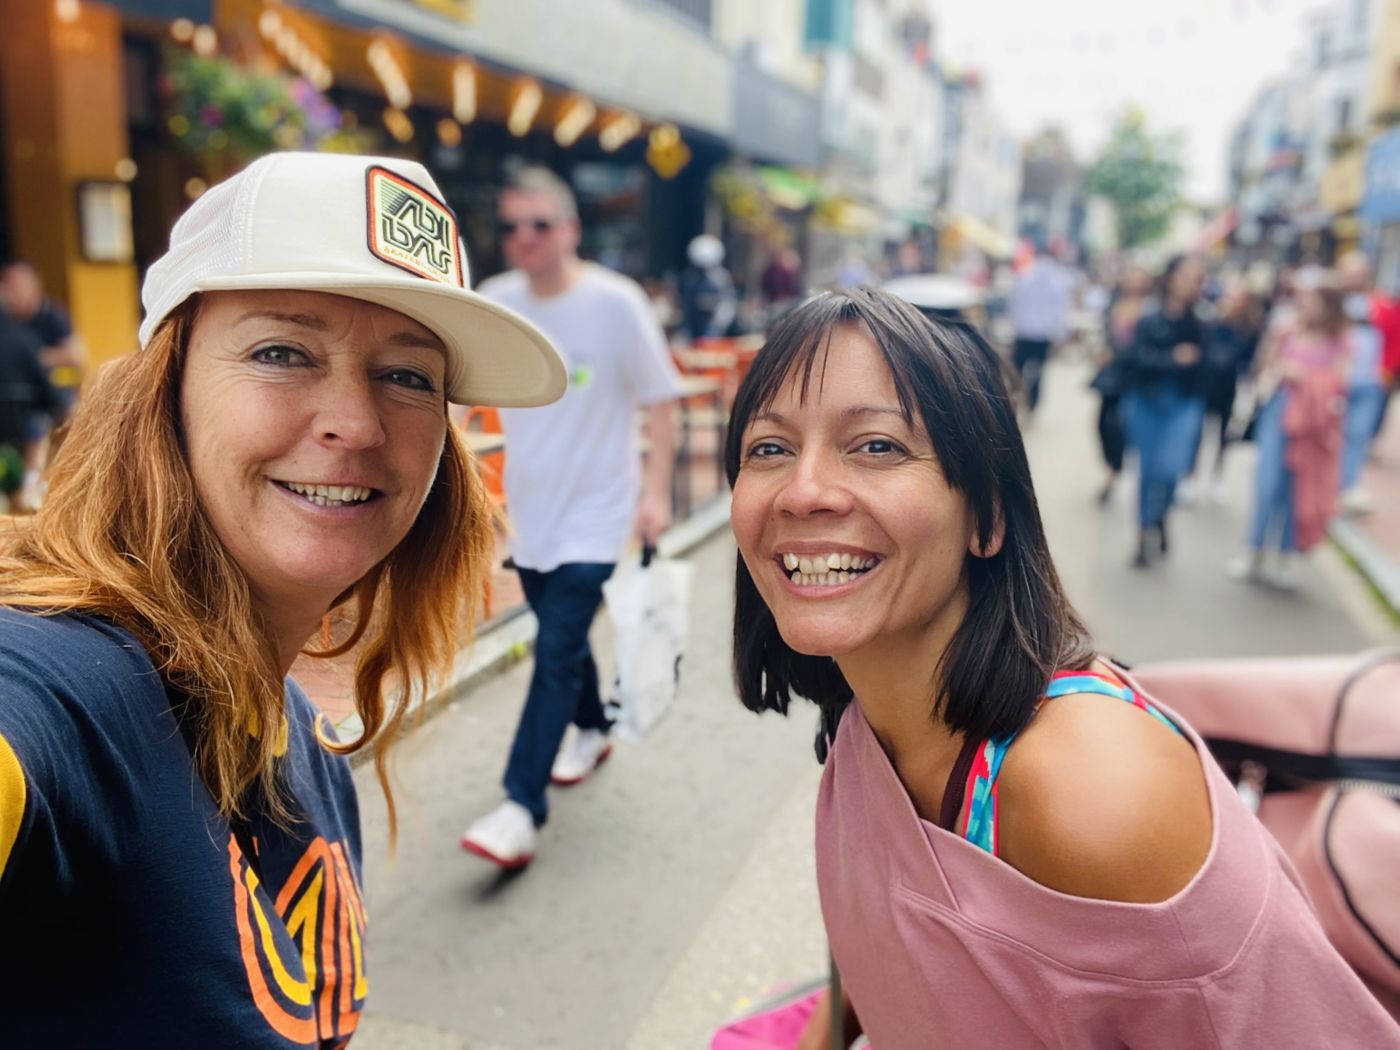 Had fun in Brighton with Sarah today! Buafit create connection!  So excited to be teaching ZUMBA at THE SCOOP in London tomorrow ... I will be bringing the Party! Get ready! LOL!